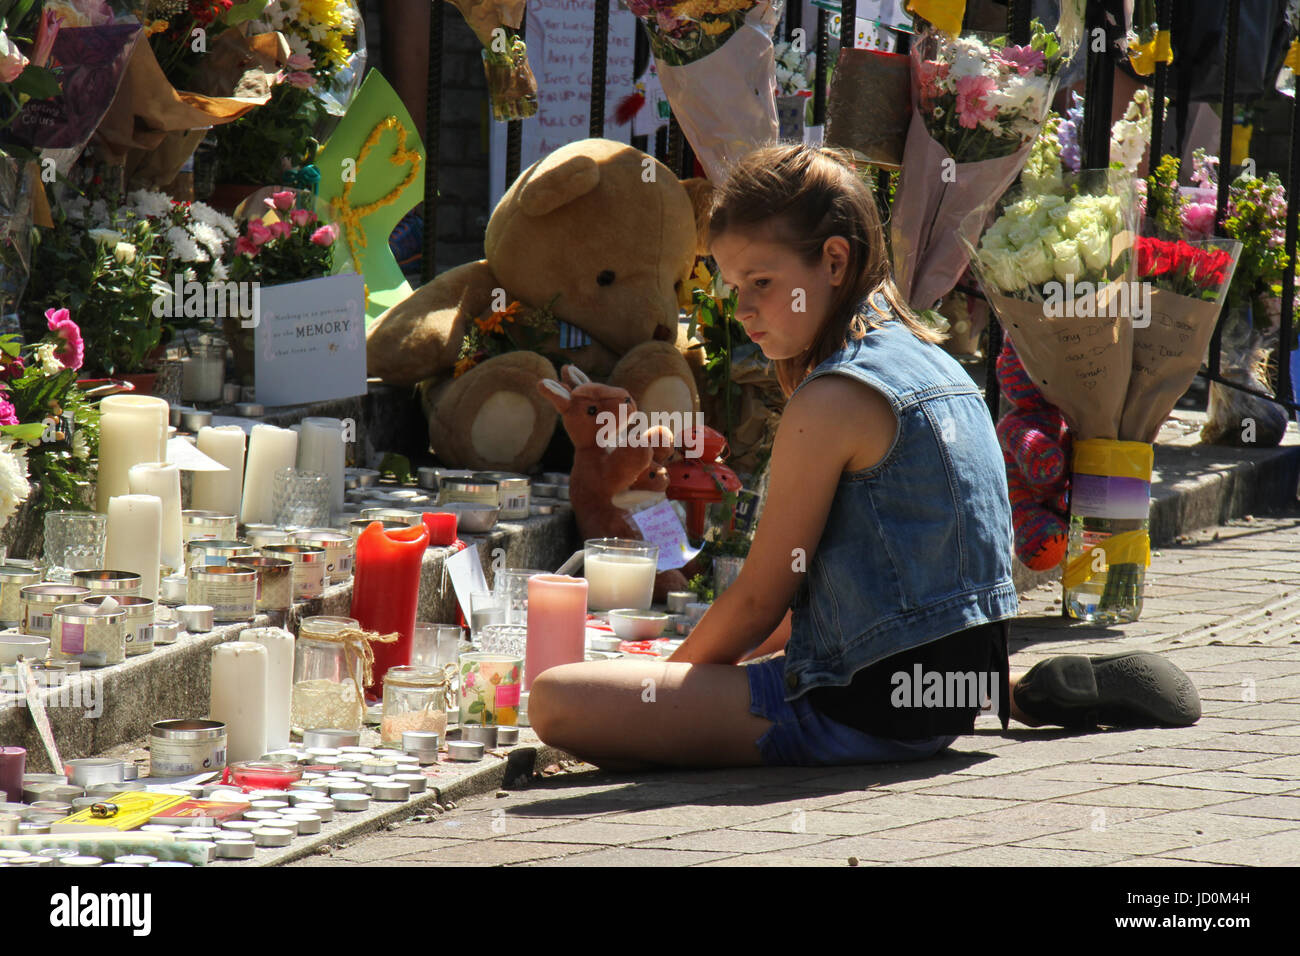 London, UK. 16th June, 2017. A young girl is seen sitting by the Grenfell Memorial outside the Notting Hill Methodist - Stock Image